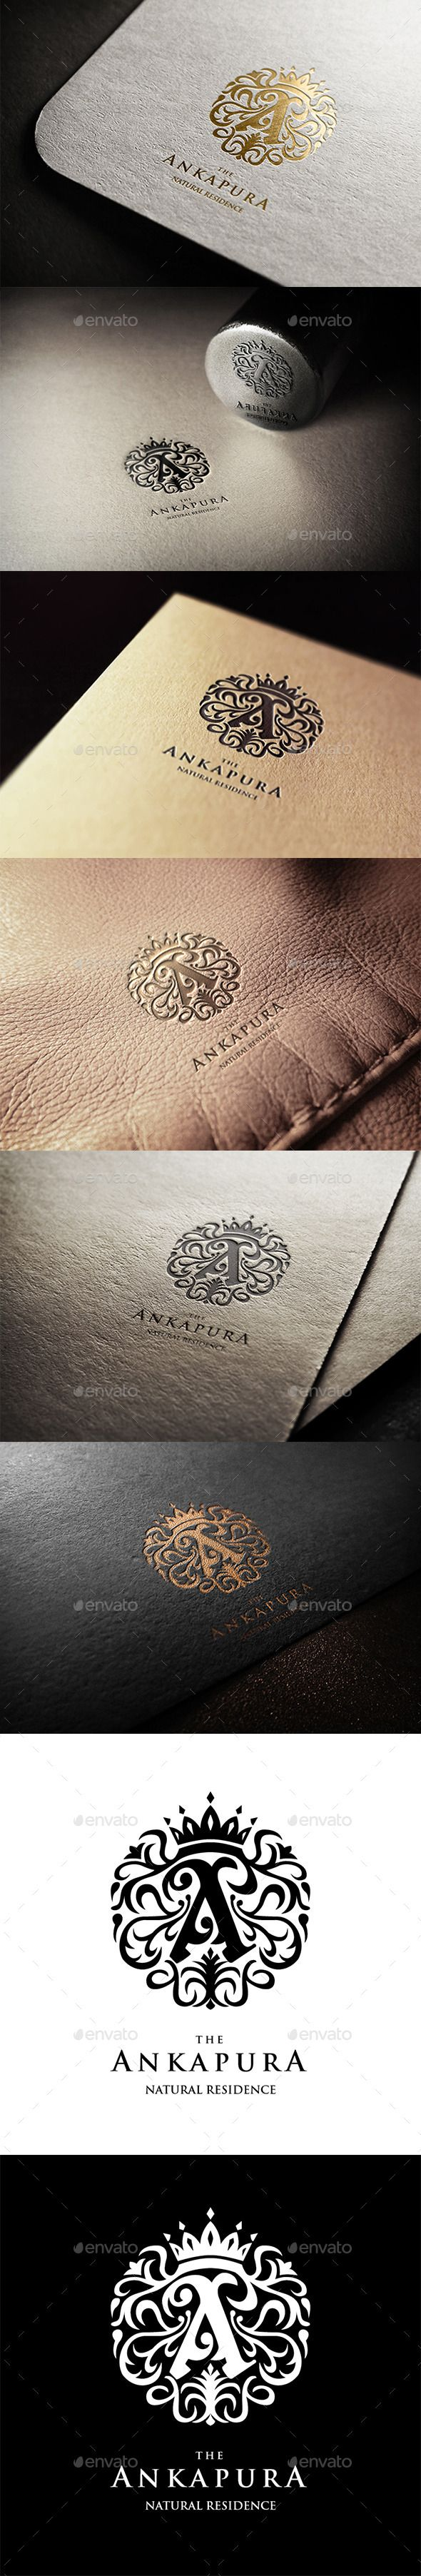 Angkapura Residence Logo Template #design #logotype Download: http://graphicriver.net/item/angkapura-residence-logo/11270532?ref=ksioks